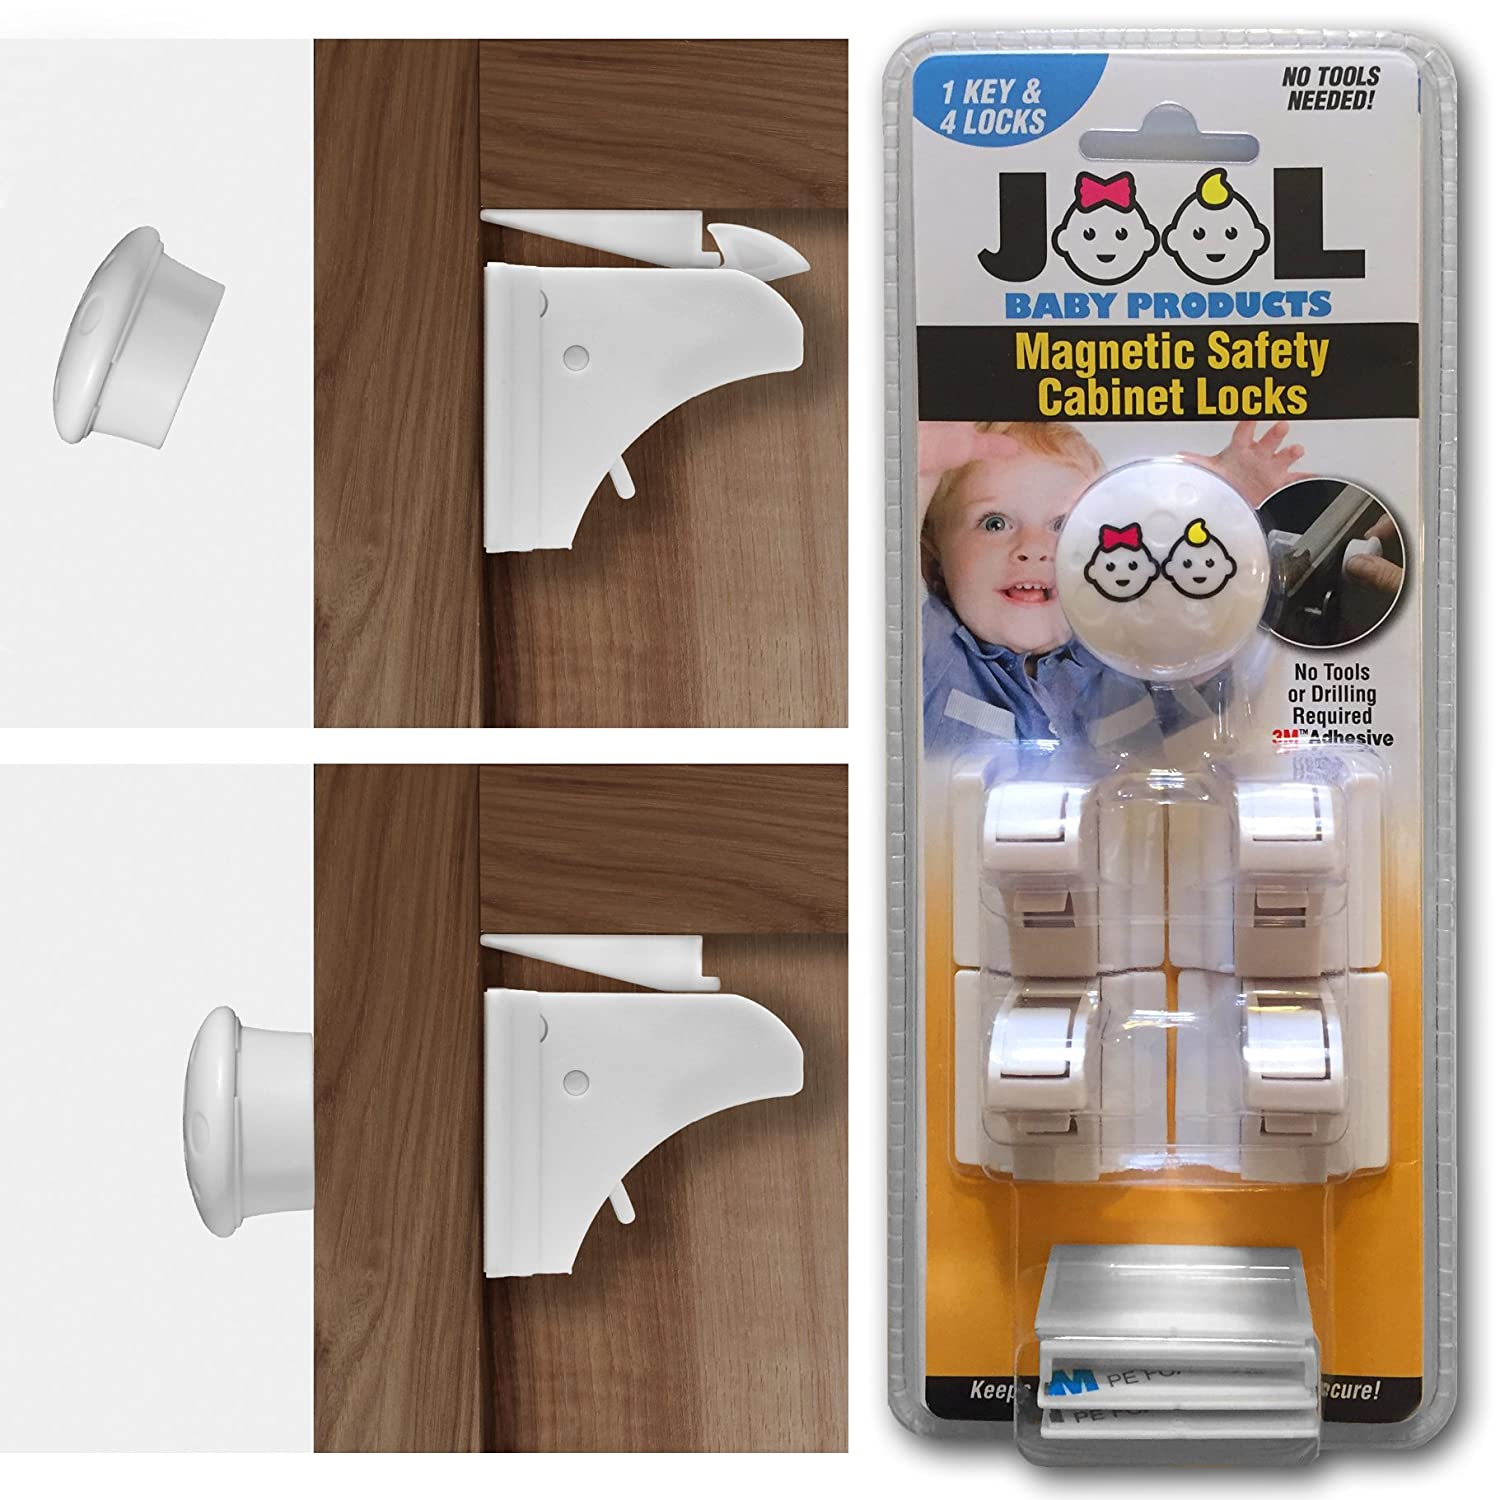 Amazon.com: Child Proof Cabinet Locks - Magnetic Child Safety ...